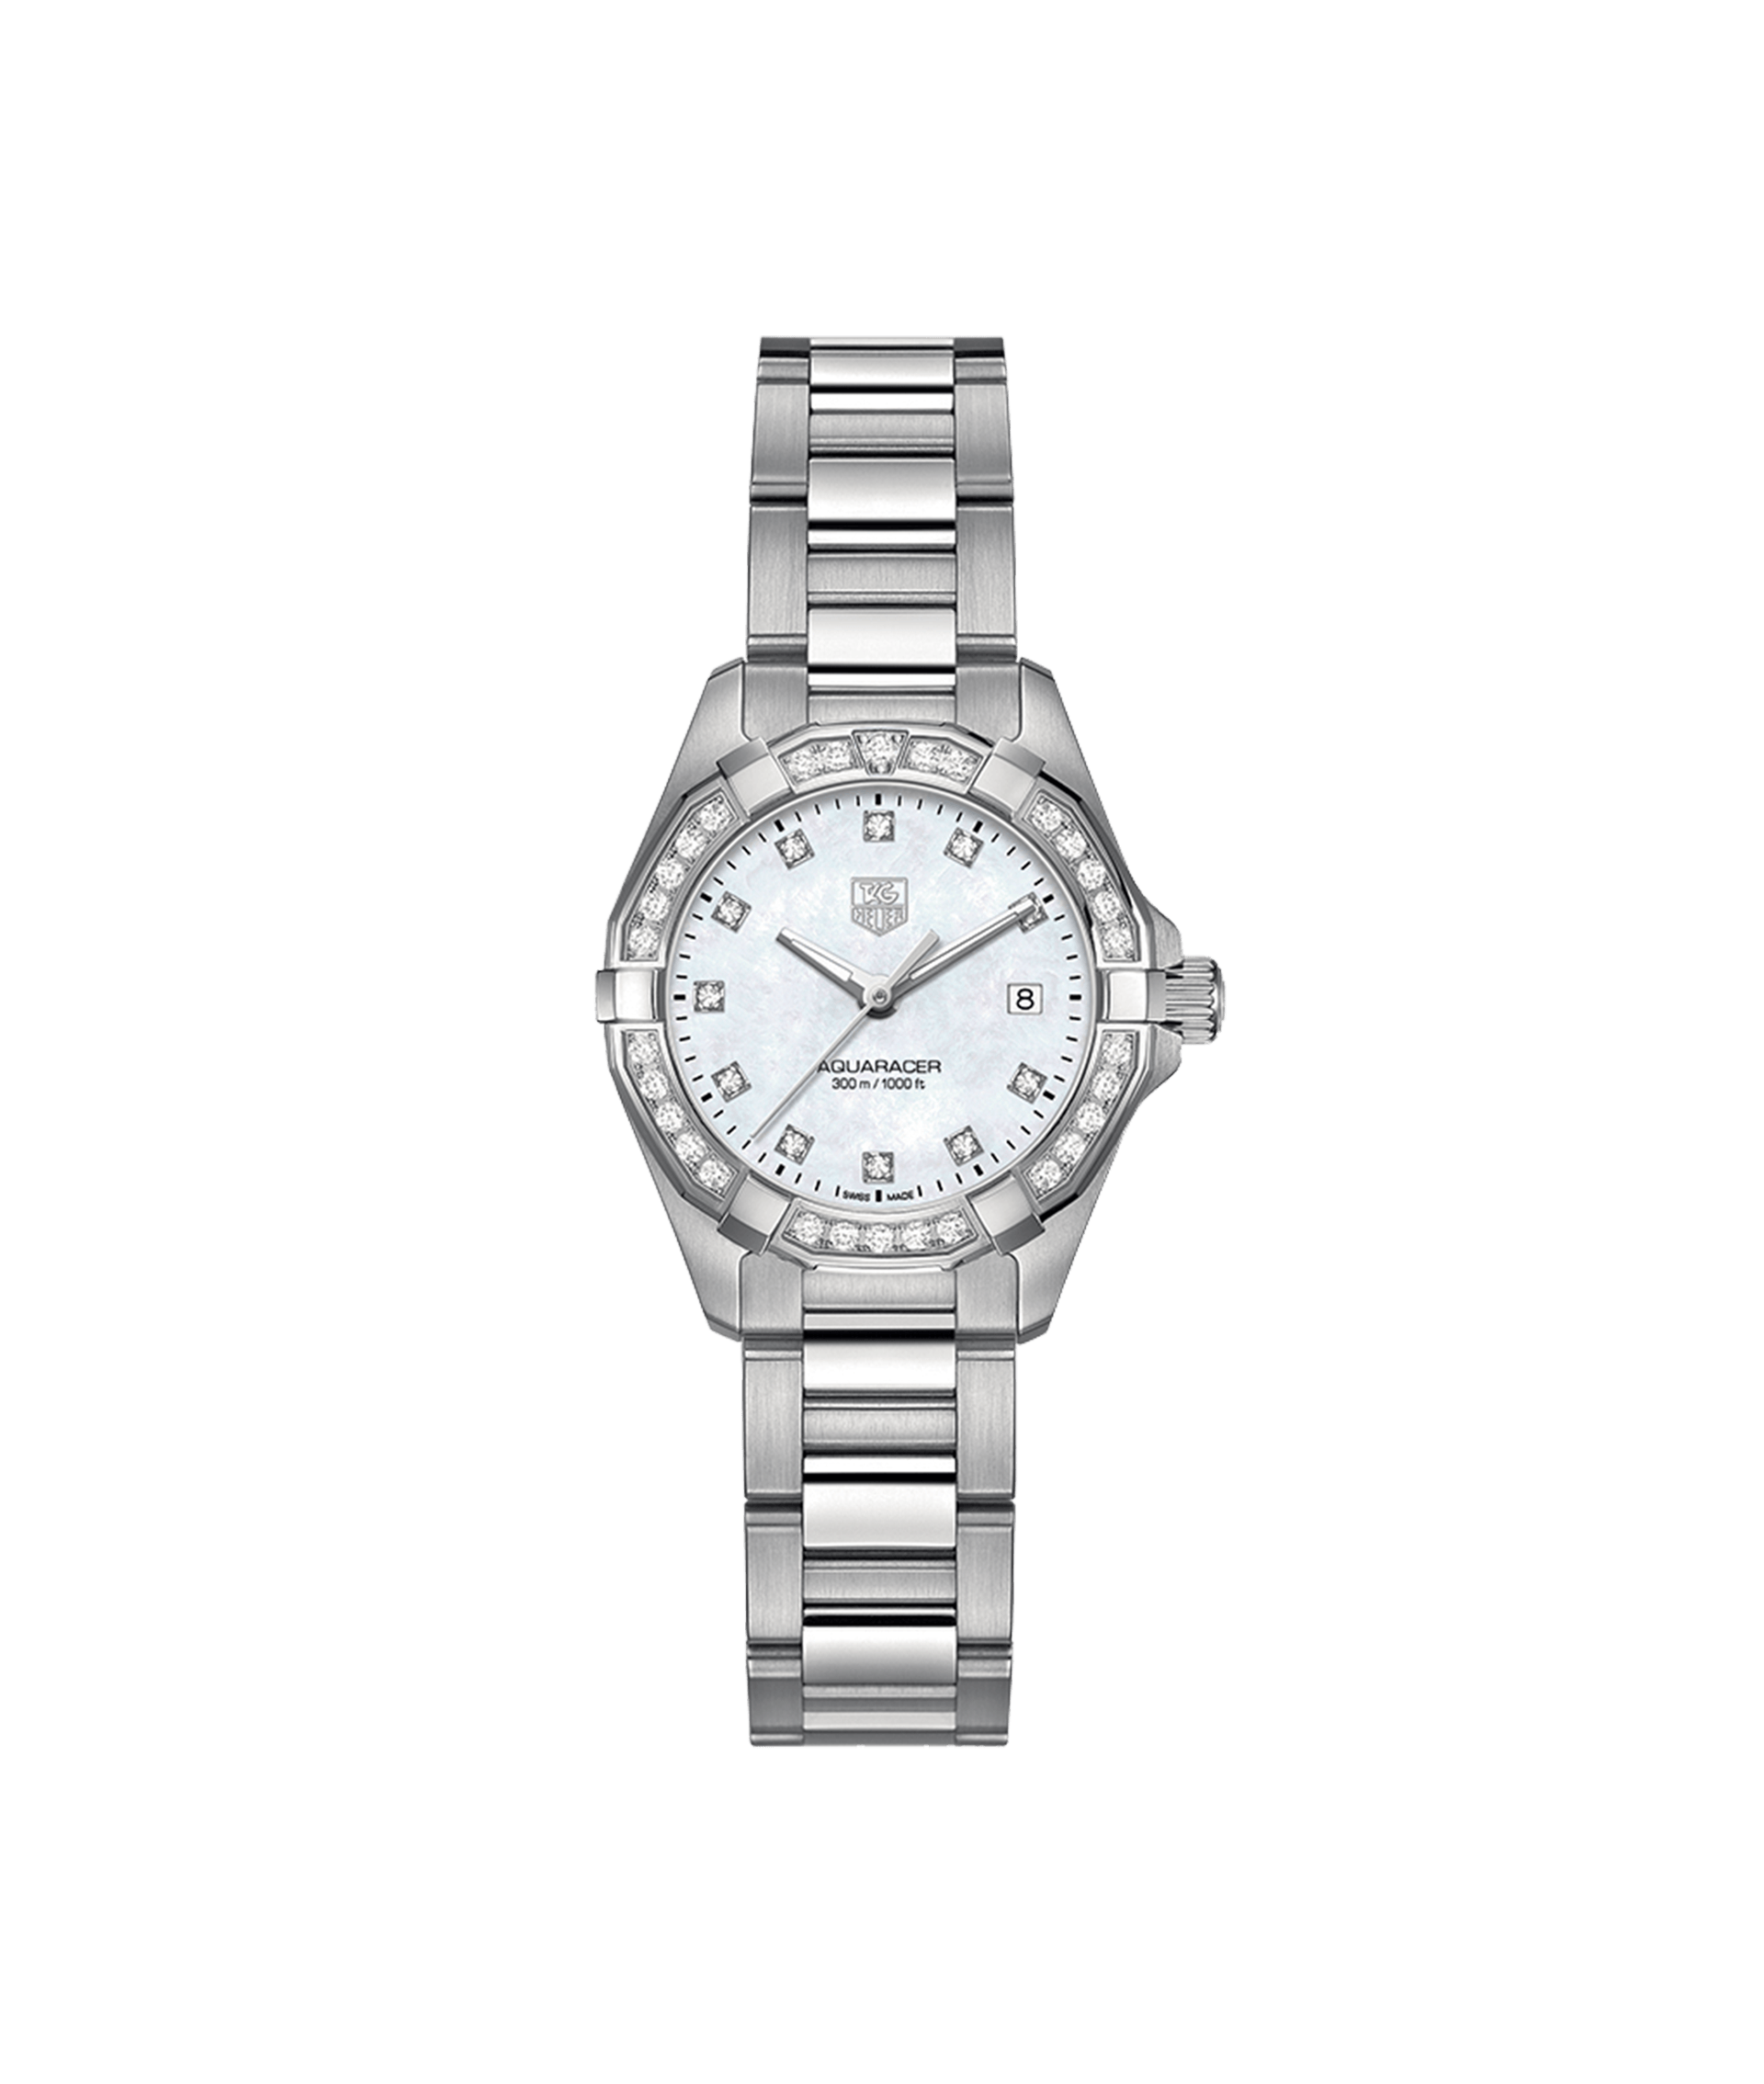 TAG HEUER AQUARACER 300m - 27mm QUARTZ DIAMOND DIAL & BEZEL - WAY1414.BA0920